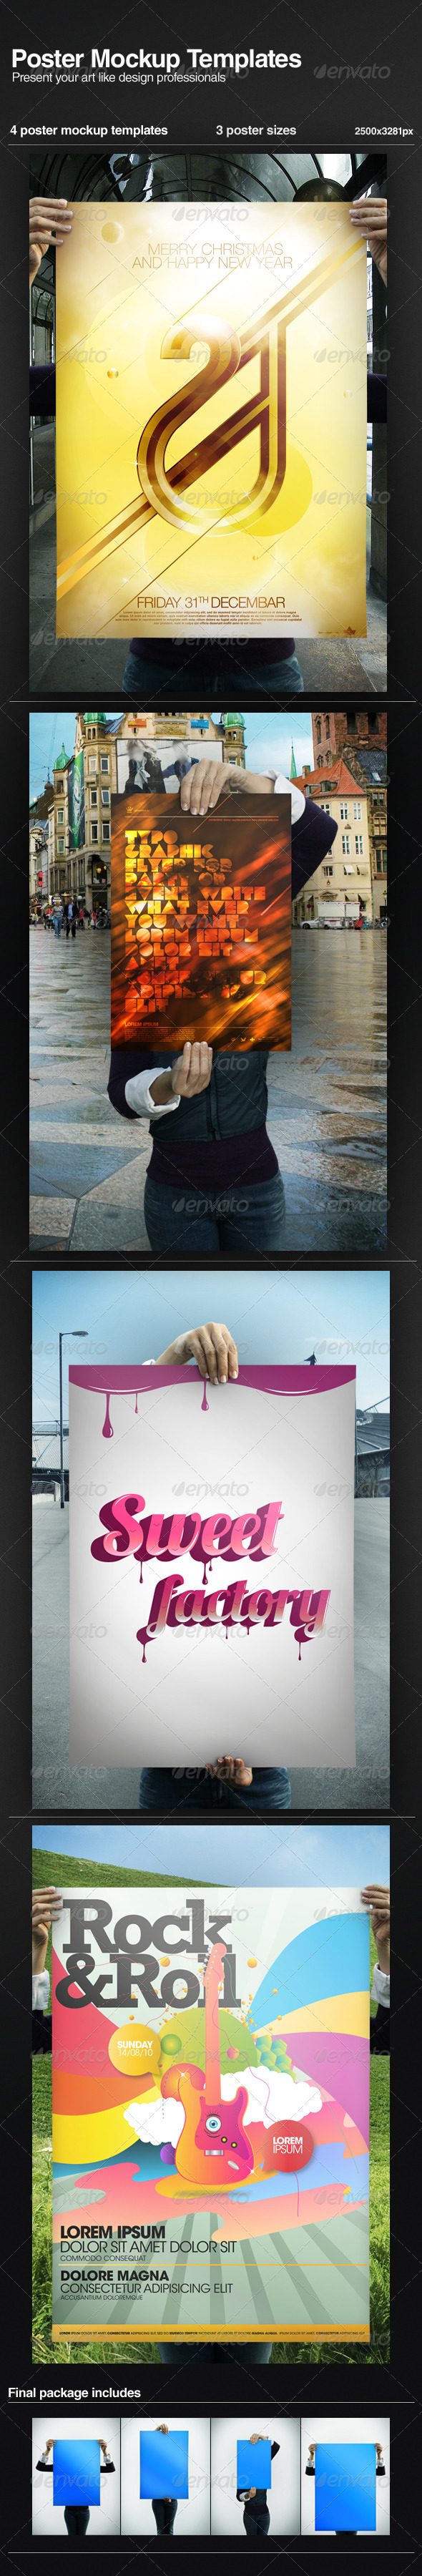 poster-mockup-template-design-resource